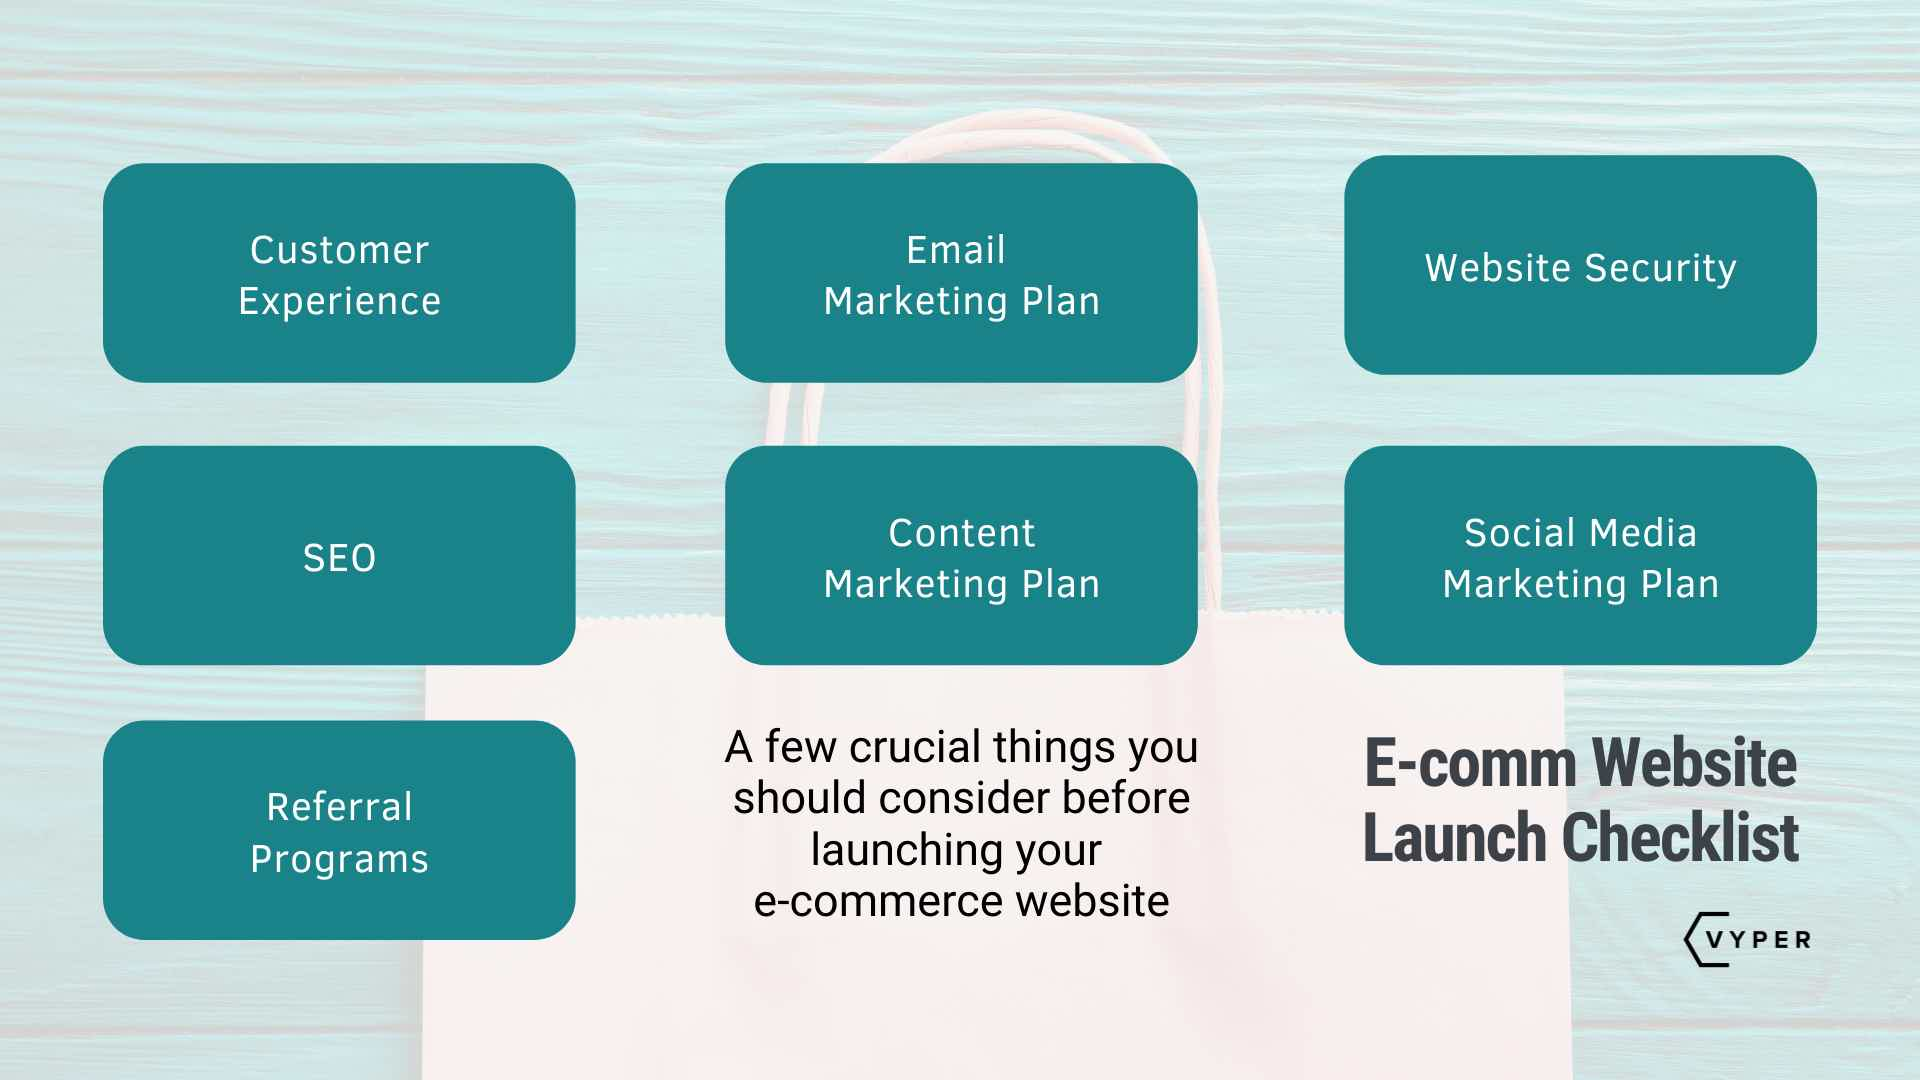 Ecommerce Website Launch Checklist